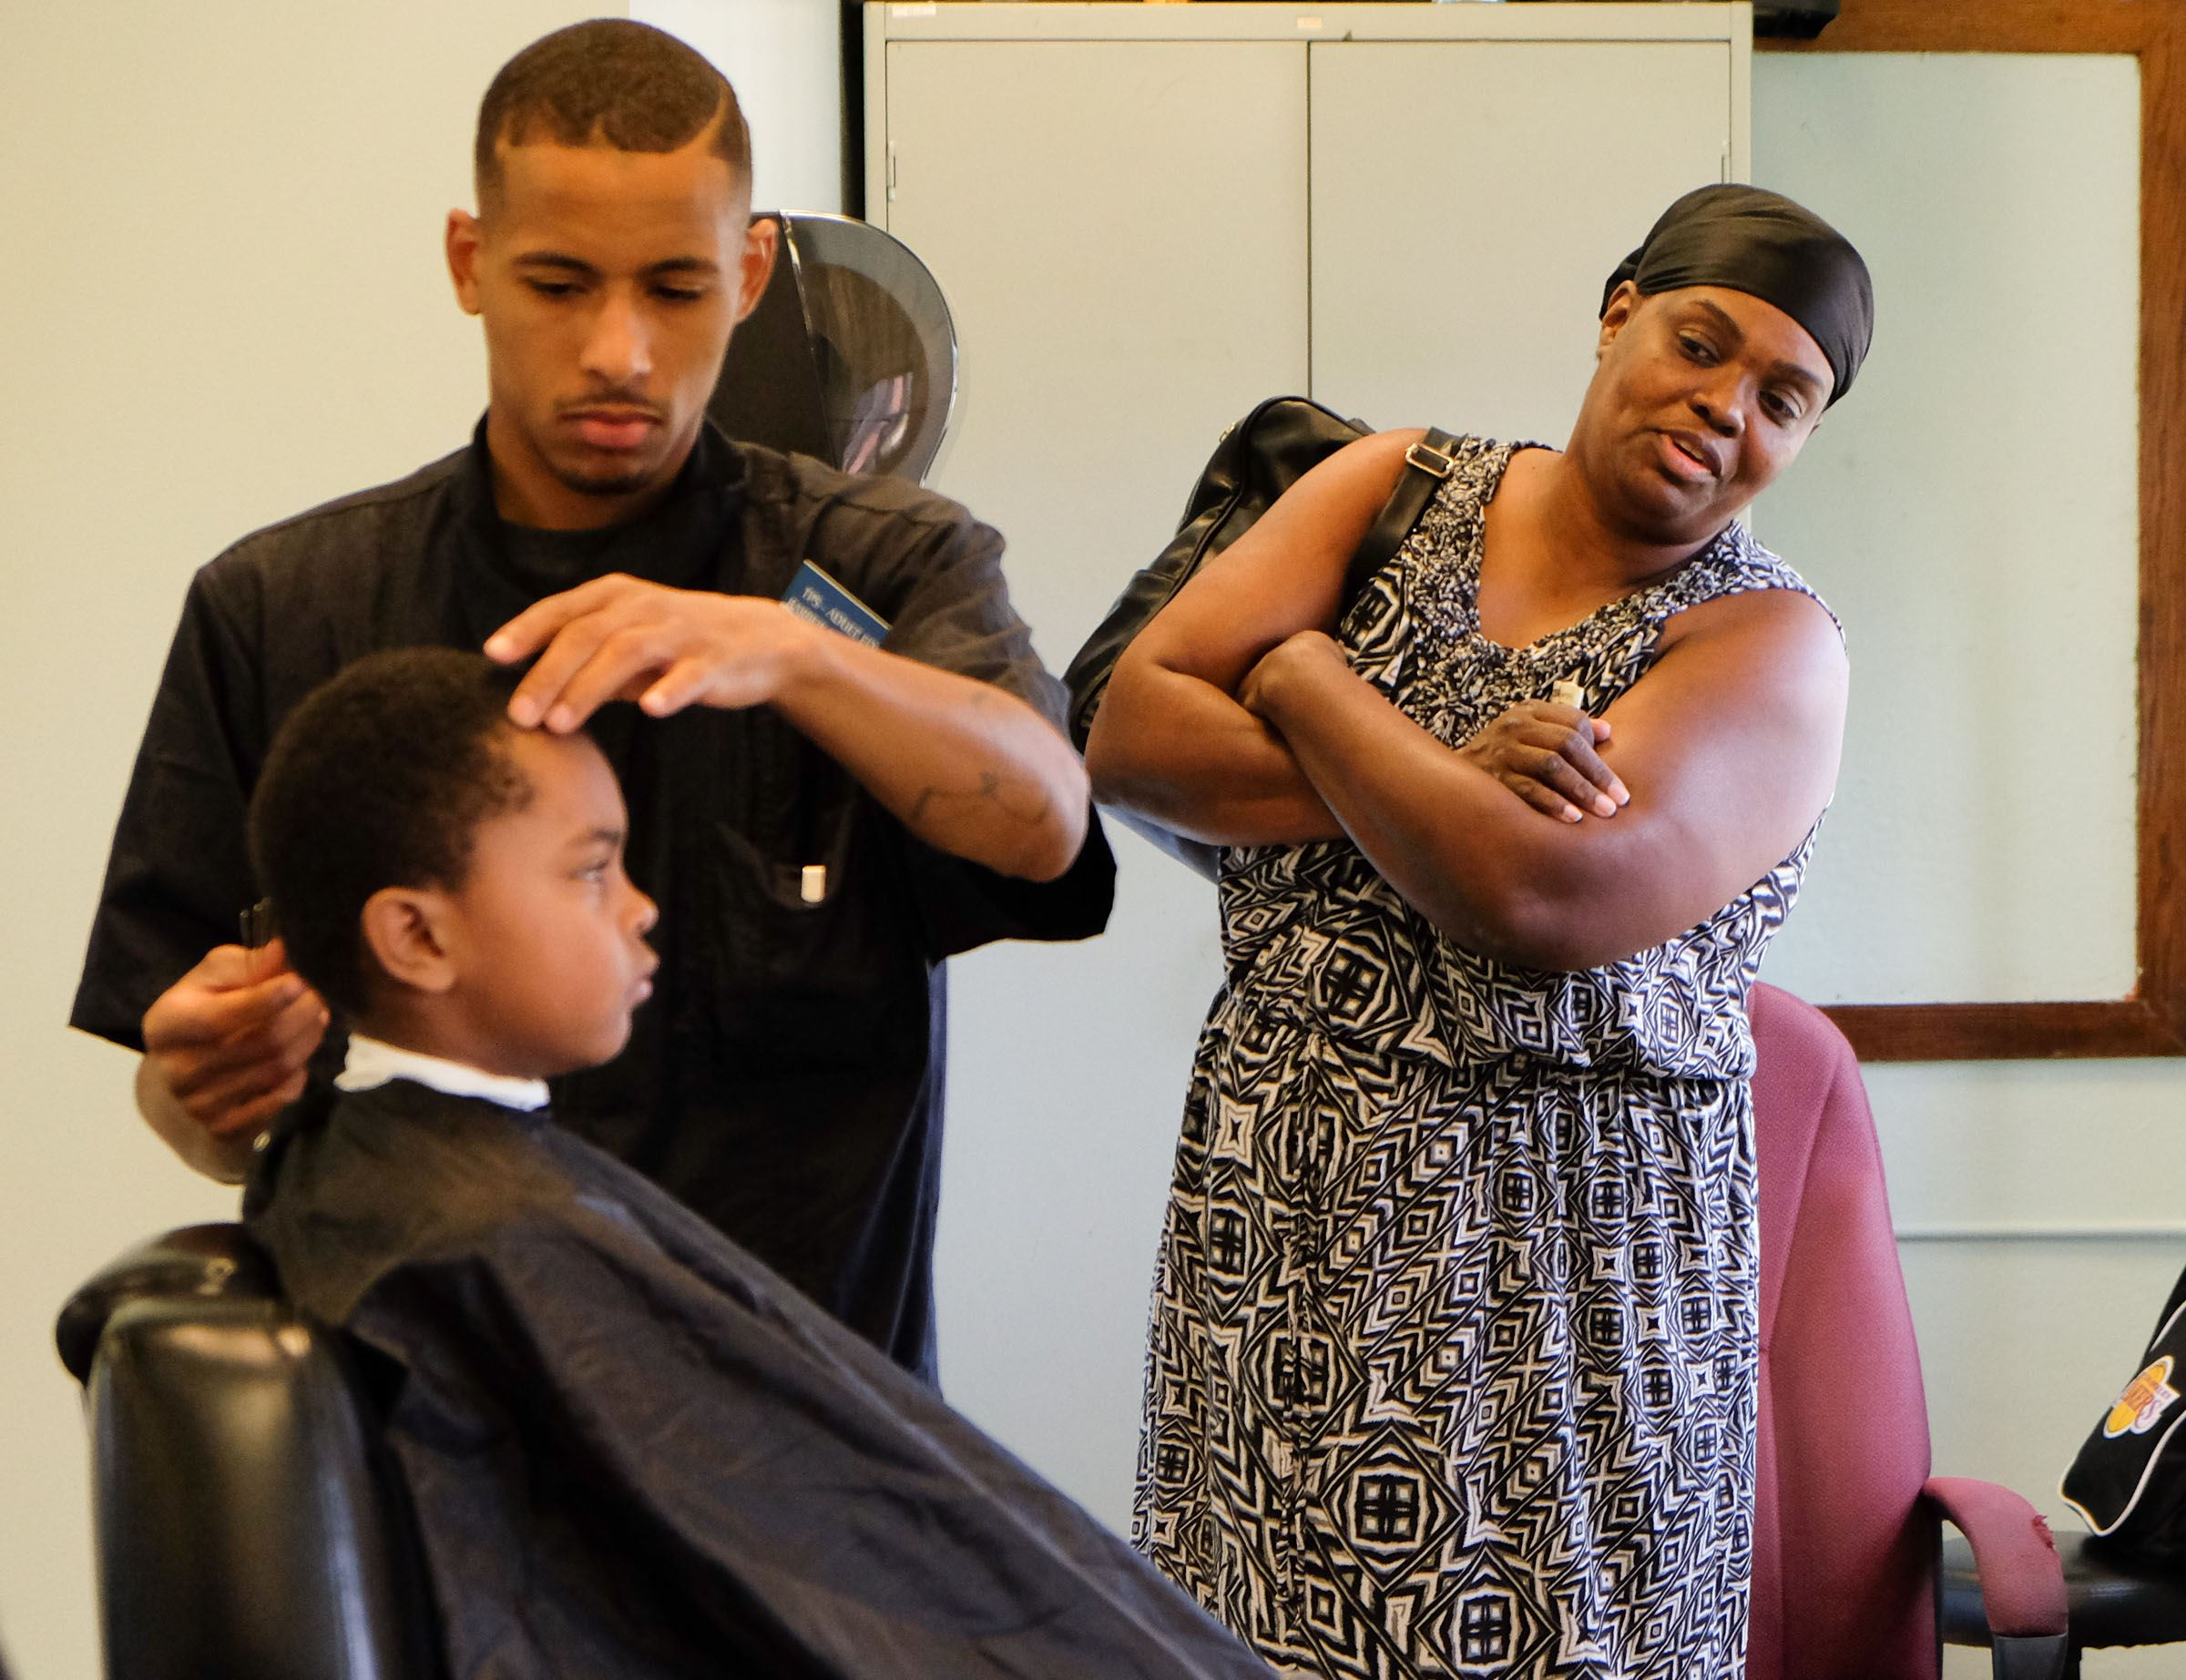 Haircut Coupons Toledo Ohio - Jamie winston of toledo right keeps an eye on grandson xavier winston 6 as he gets his haircut by kyle lightner of toledo